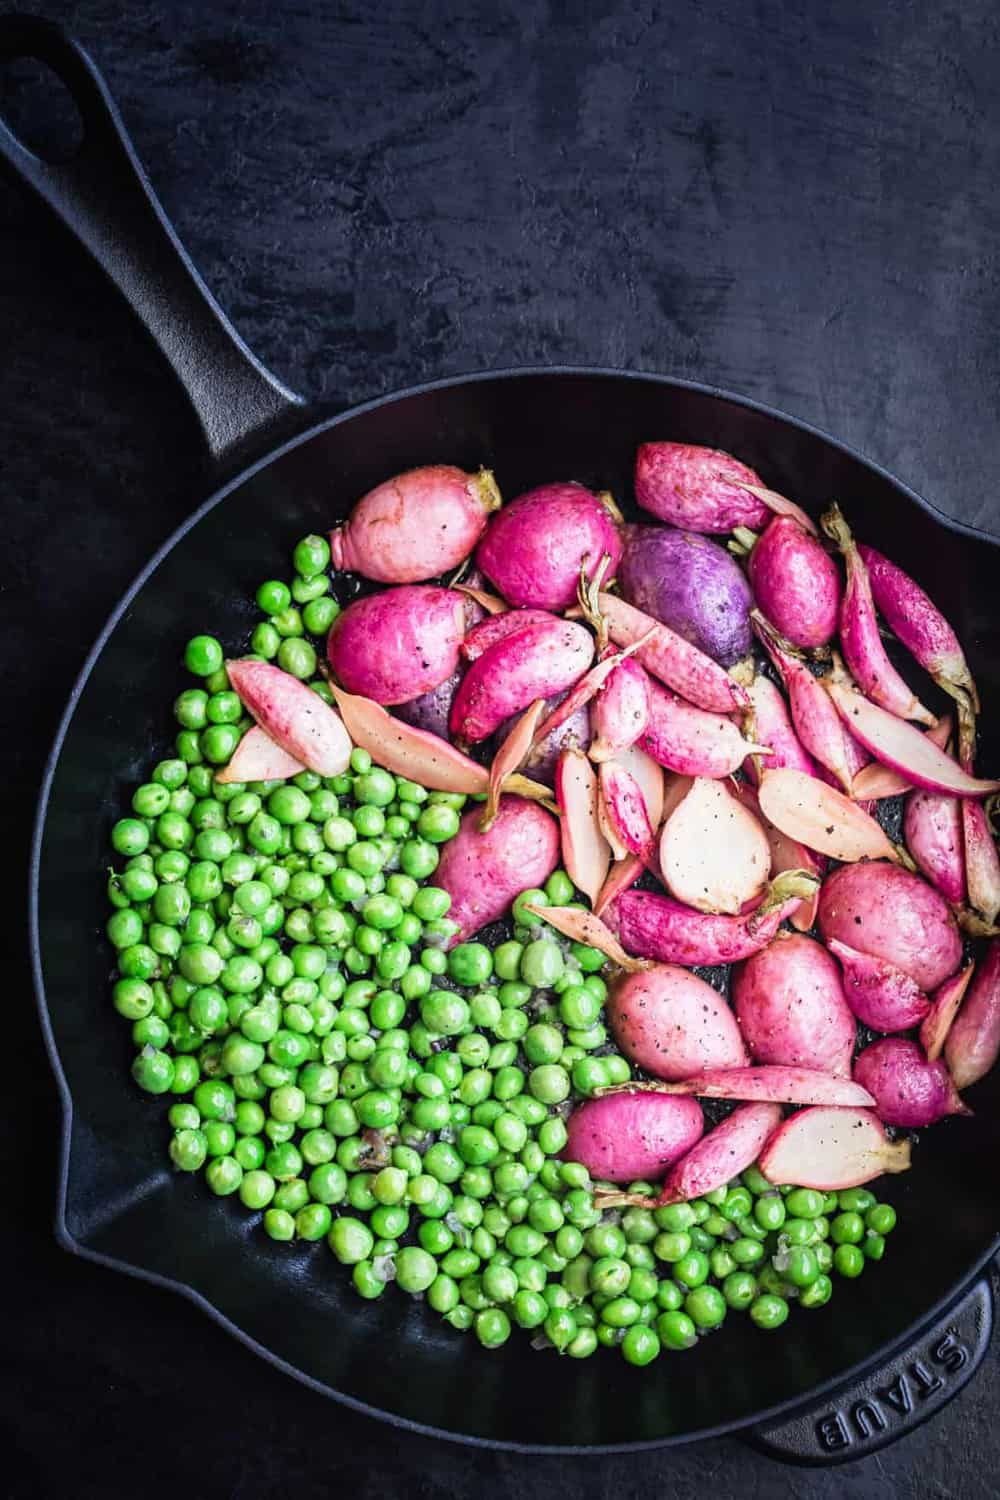 Cast iron skillet with peas on one half of the pan and roasted radishes on the other.